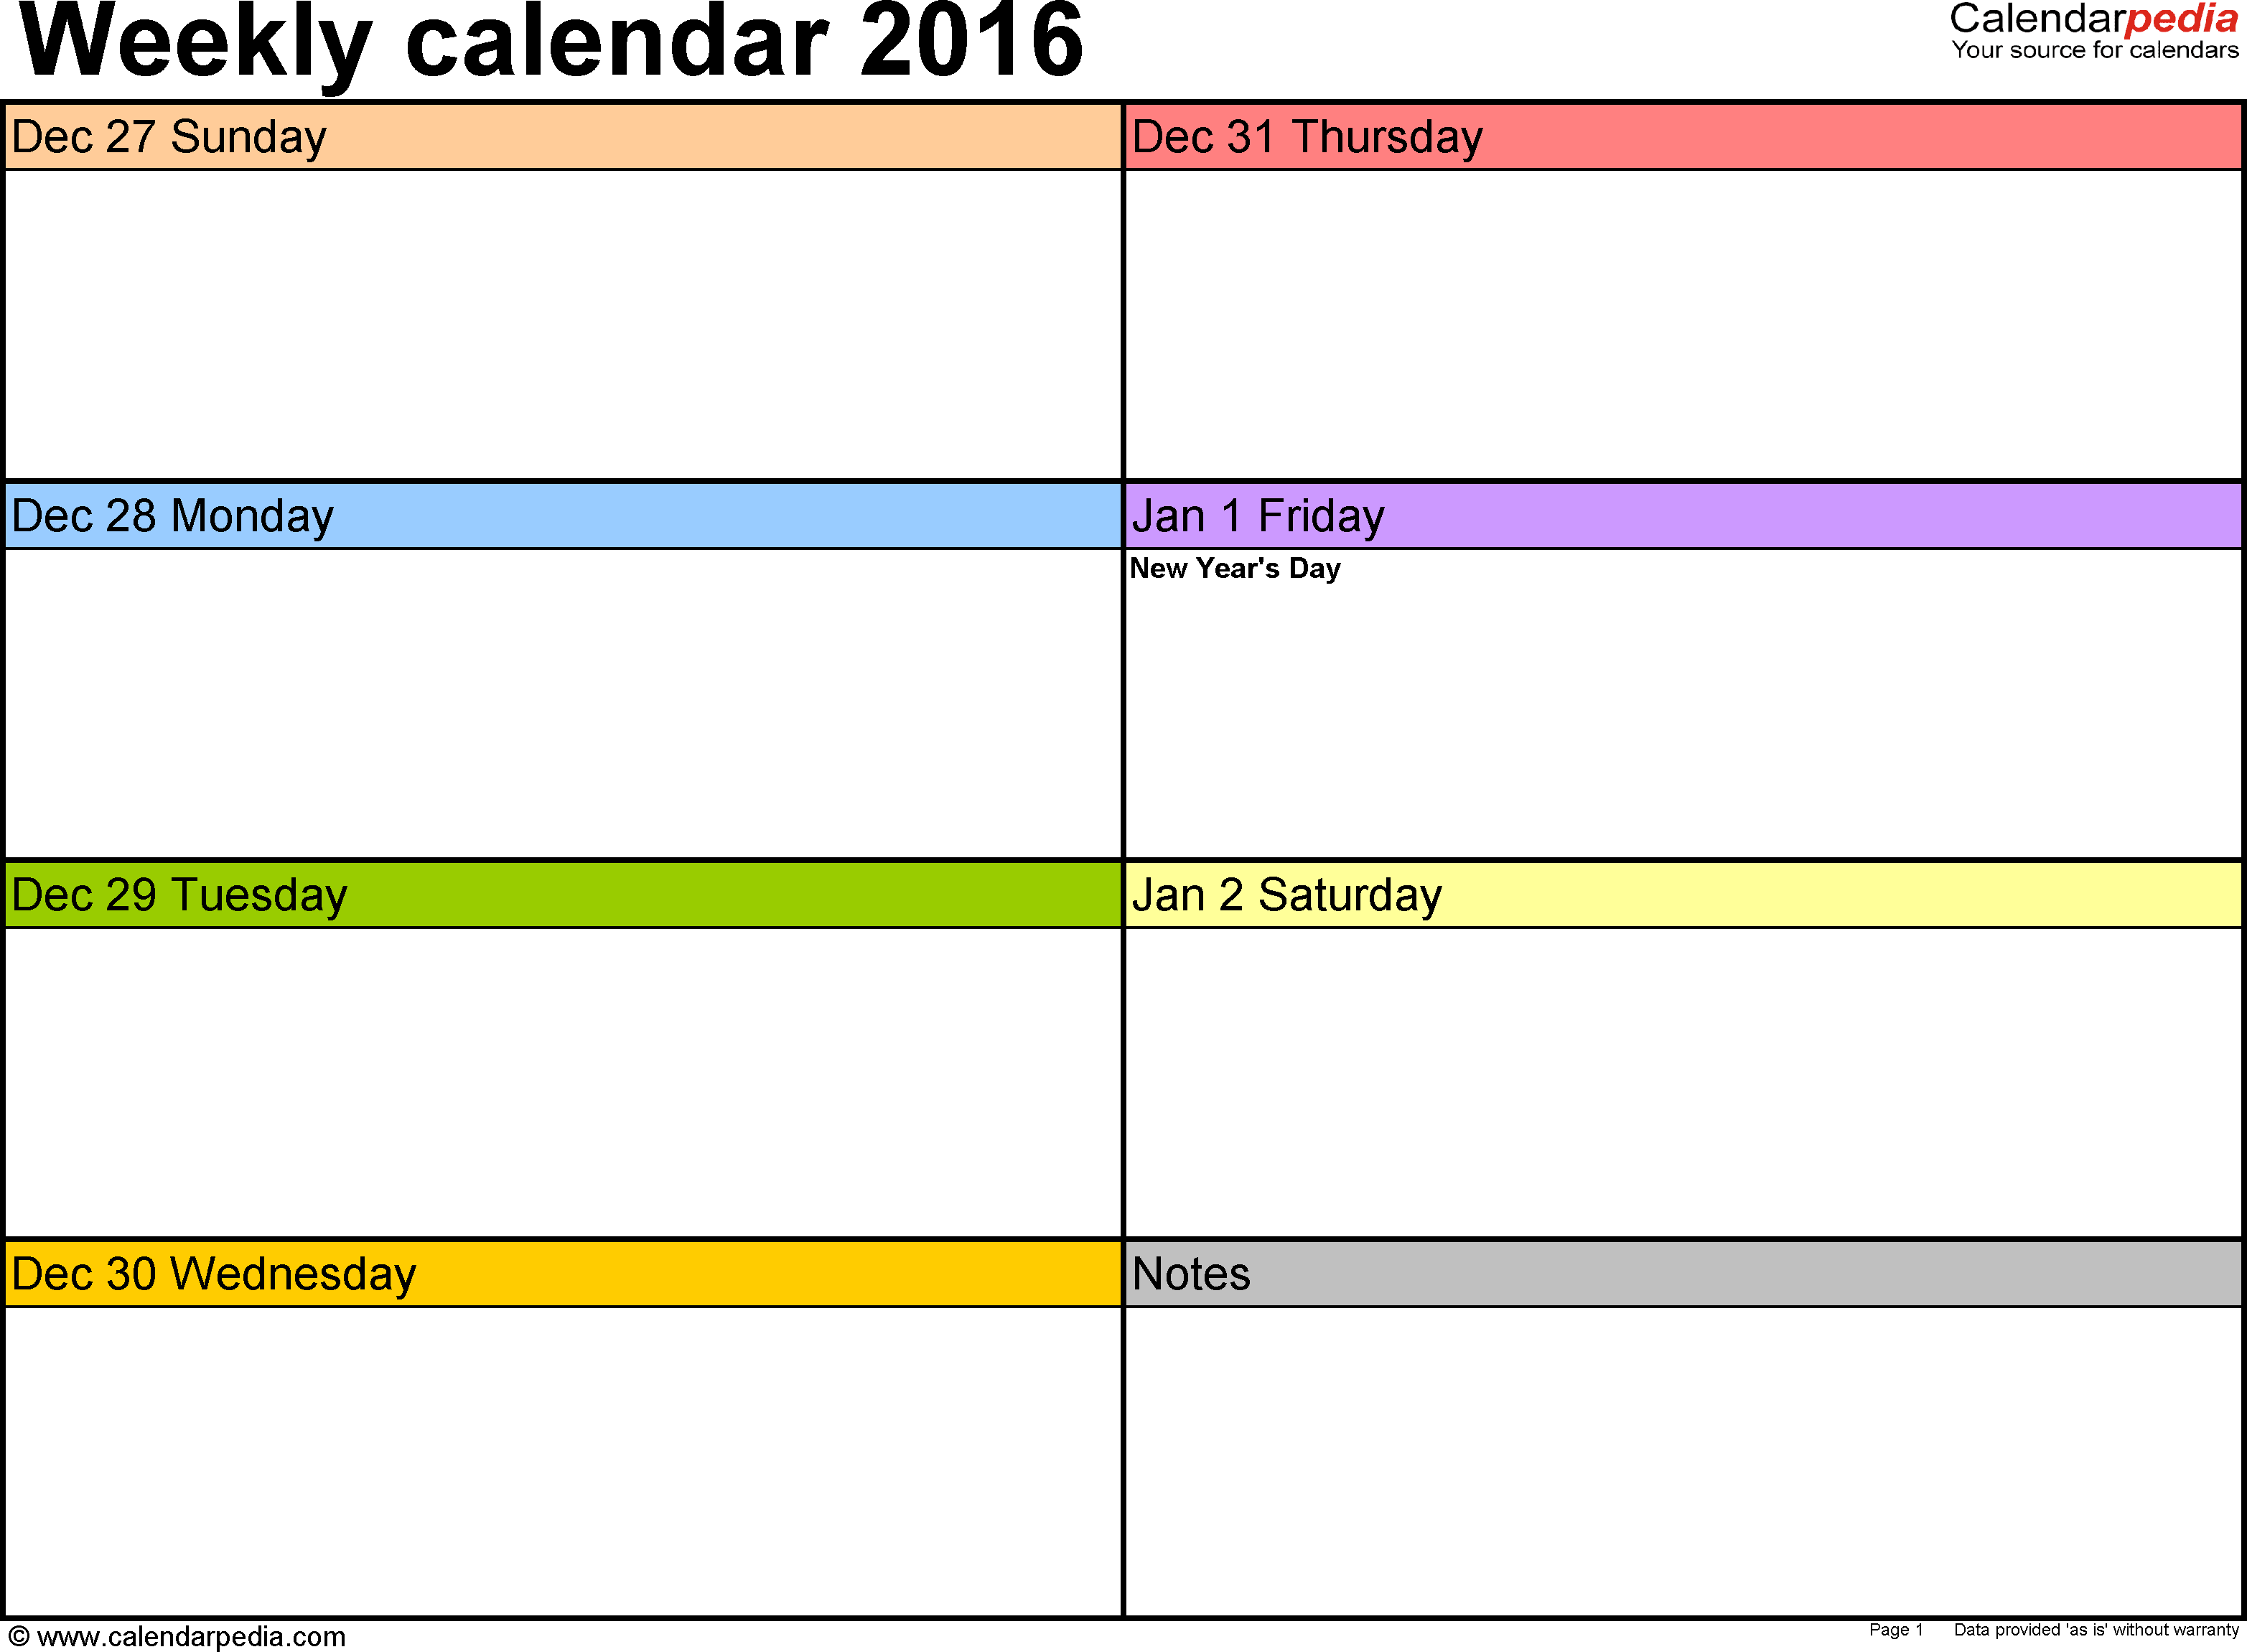 Weekly Calendar 2016 Template For Pdf Version 6 Landscape